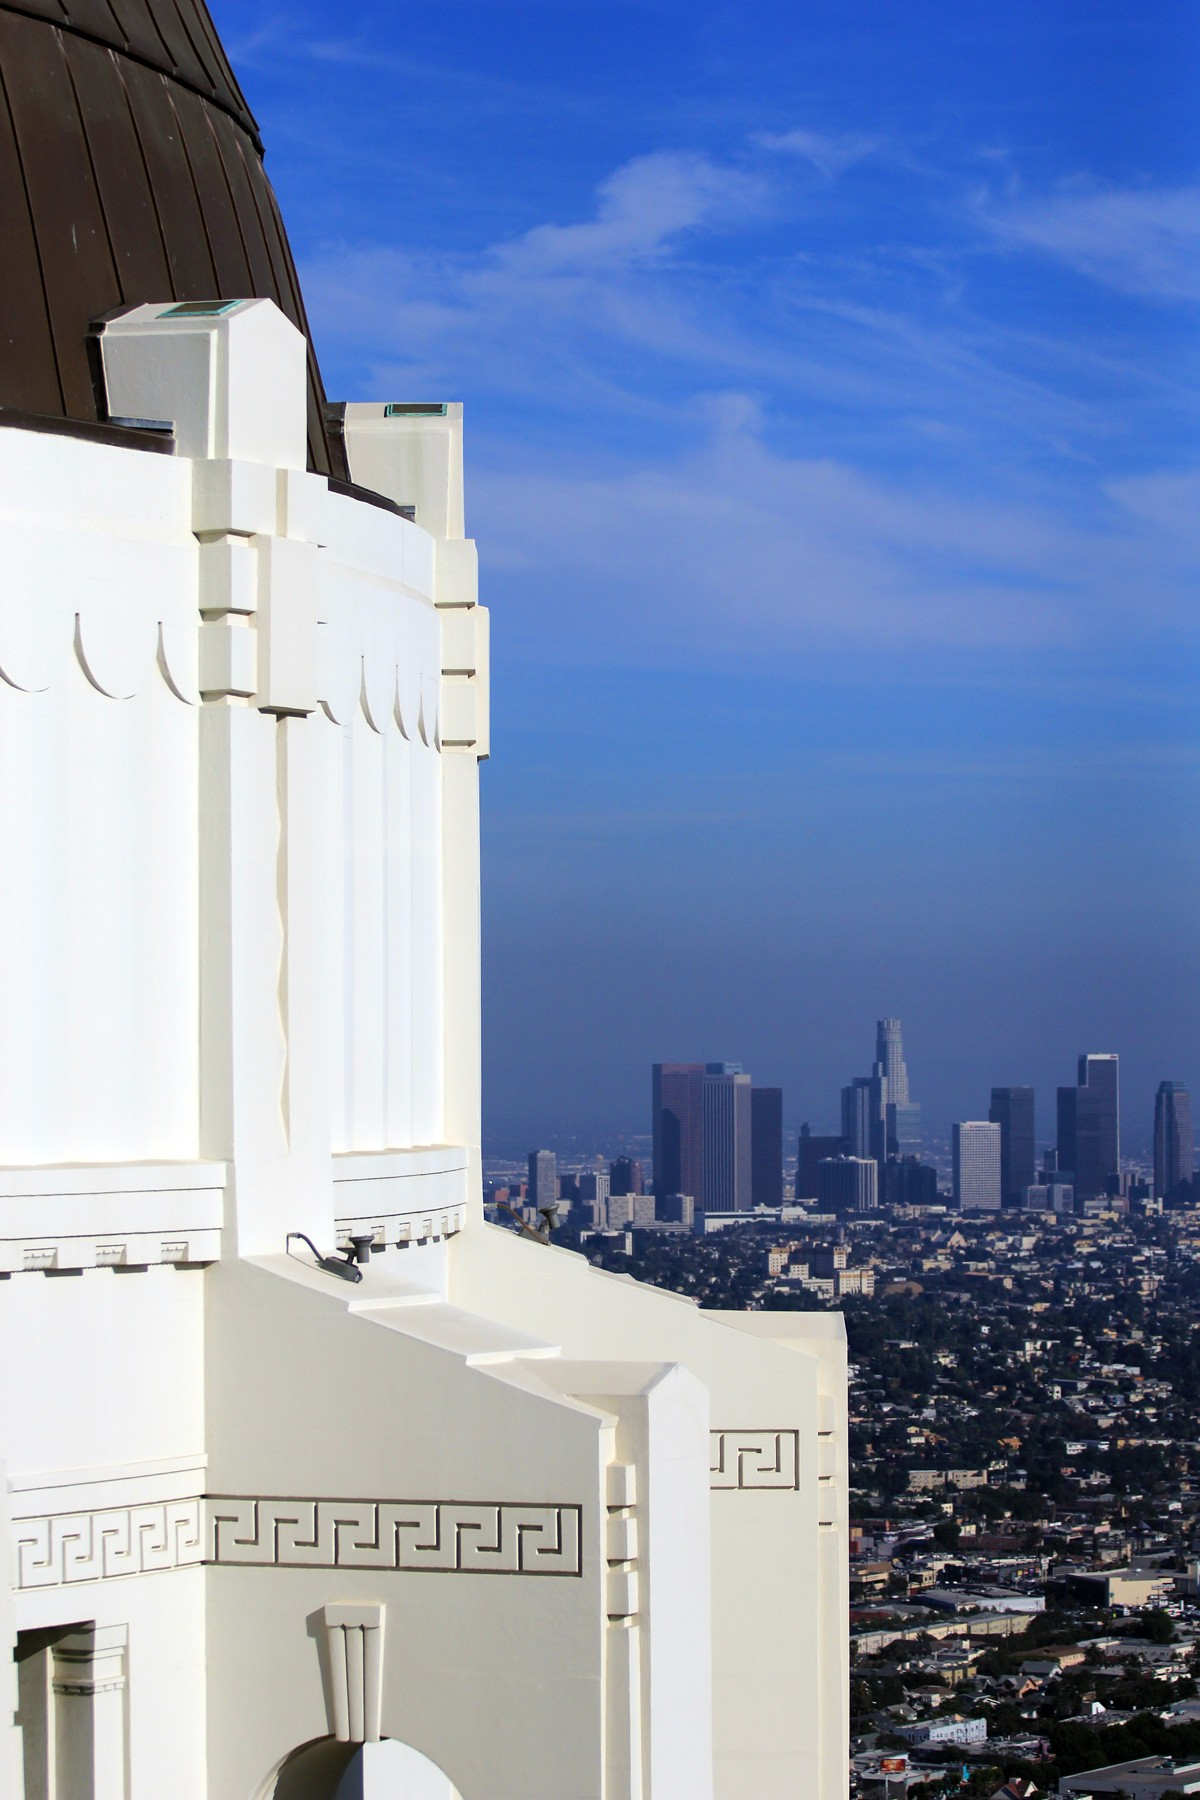 Casual_And_Stylish_Look_For_My_Visit_To_The_Griffith_Observatory_10